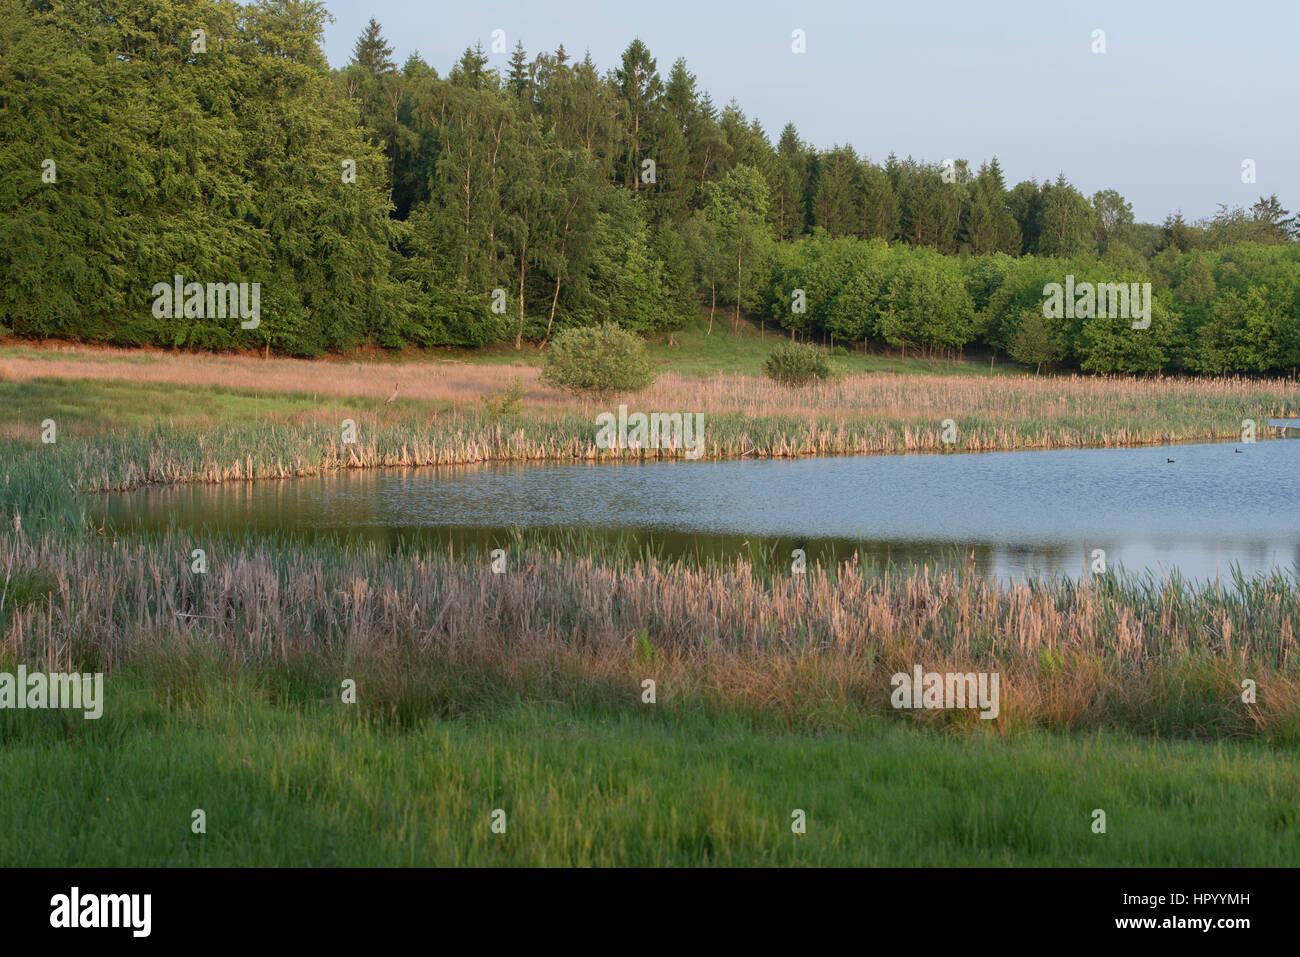 Open water is an important biotope in the forest - Stock Image